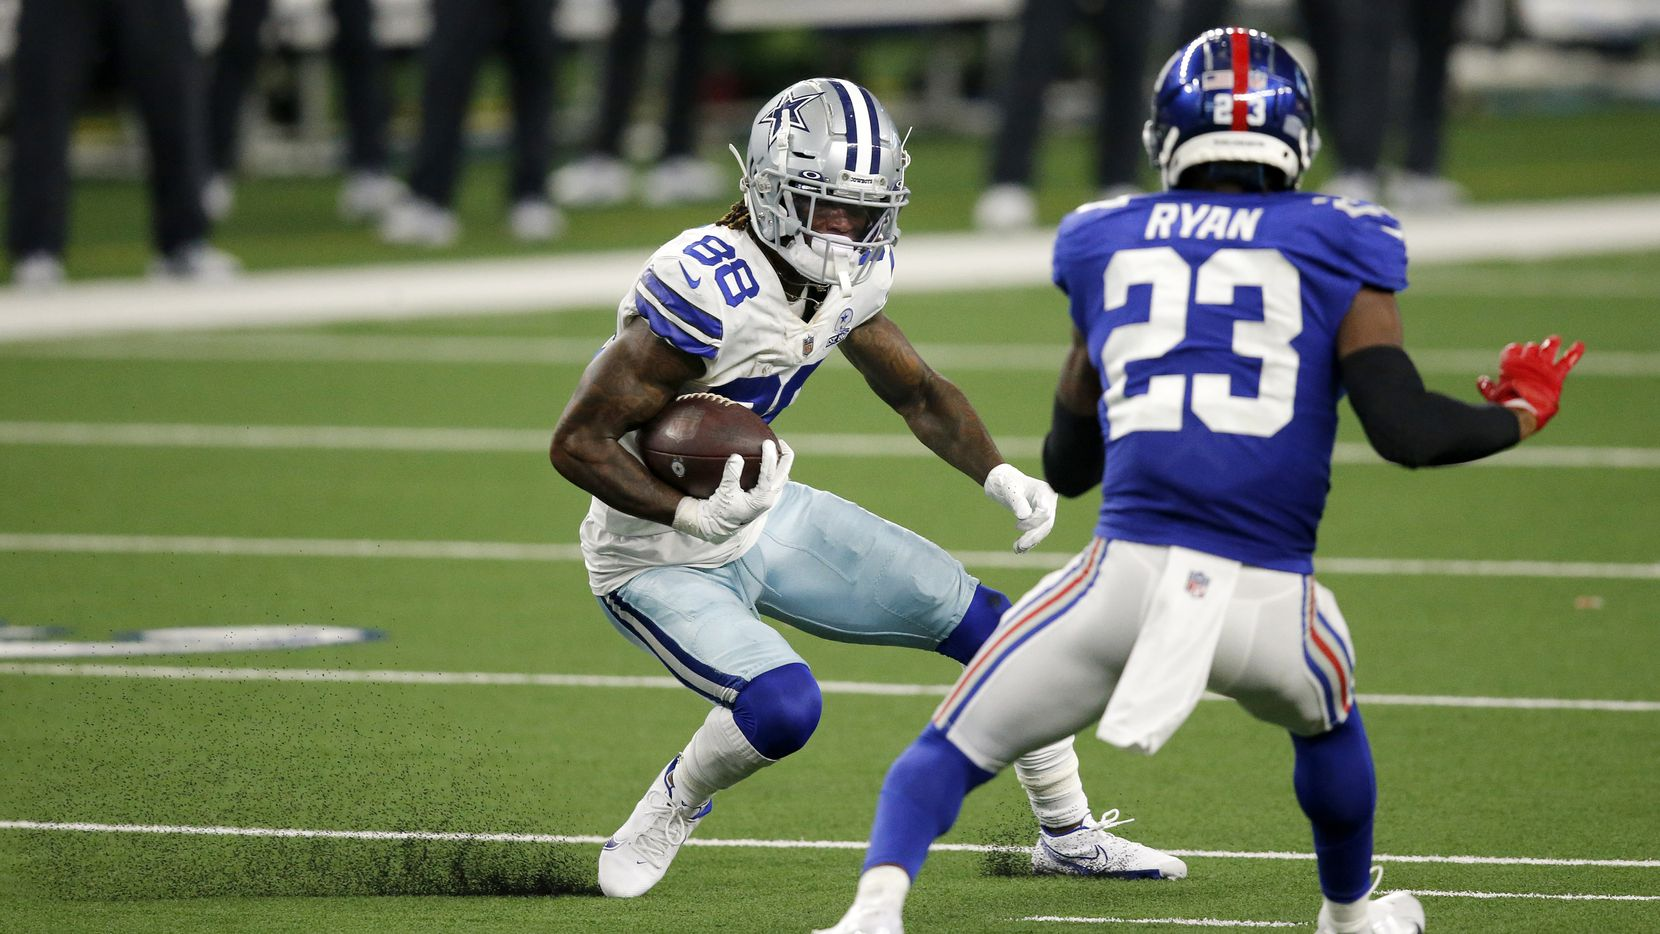 Cowboys wide receiver CeeDee Lamb (88) puts on the brakes to avoid Giants defensive back Logan Ryan (23) during the fourth quarter of a game on Sunday, Oct. 11, 2020, at AT&T Stadium in Arlington.